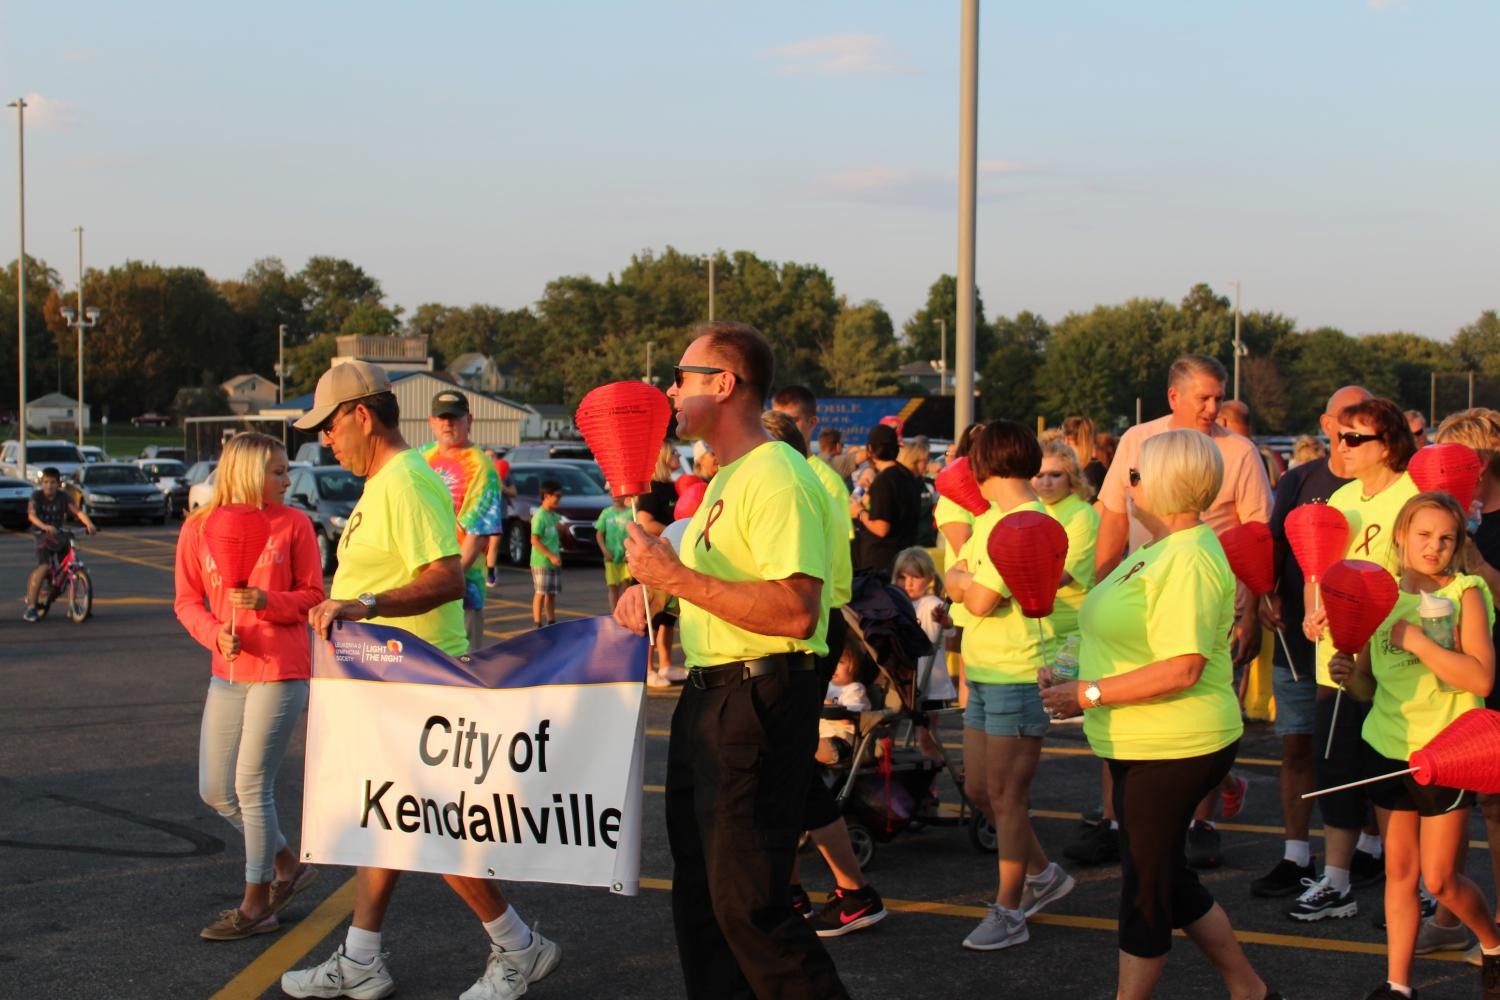 Pictured is the City of Kendallville team preparing to walk aside Mayor Handshoe in the Light the Night walk.